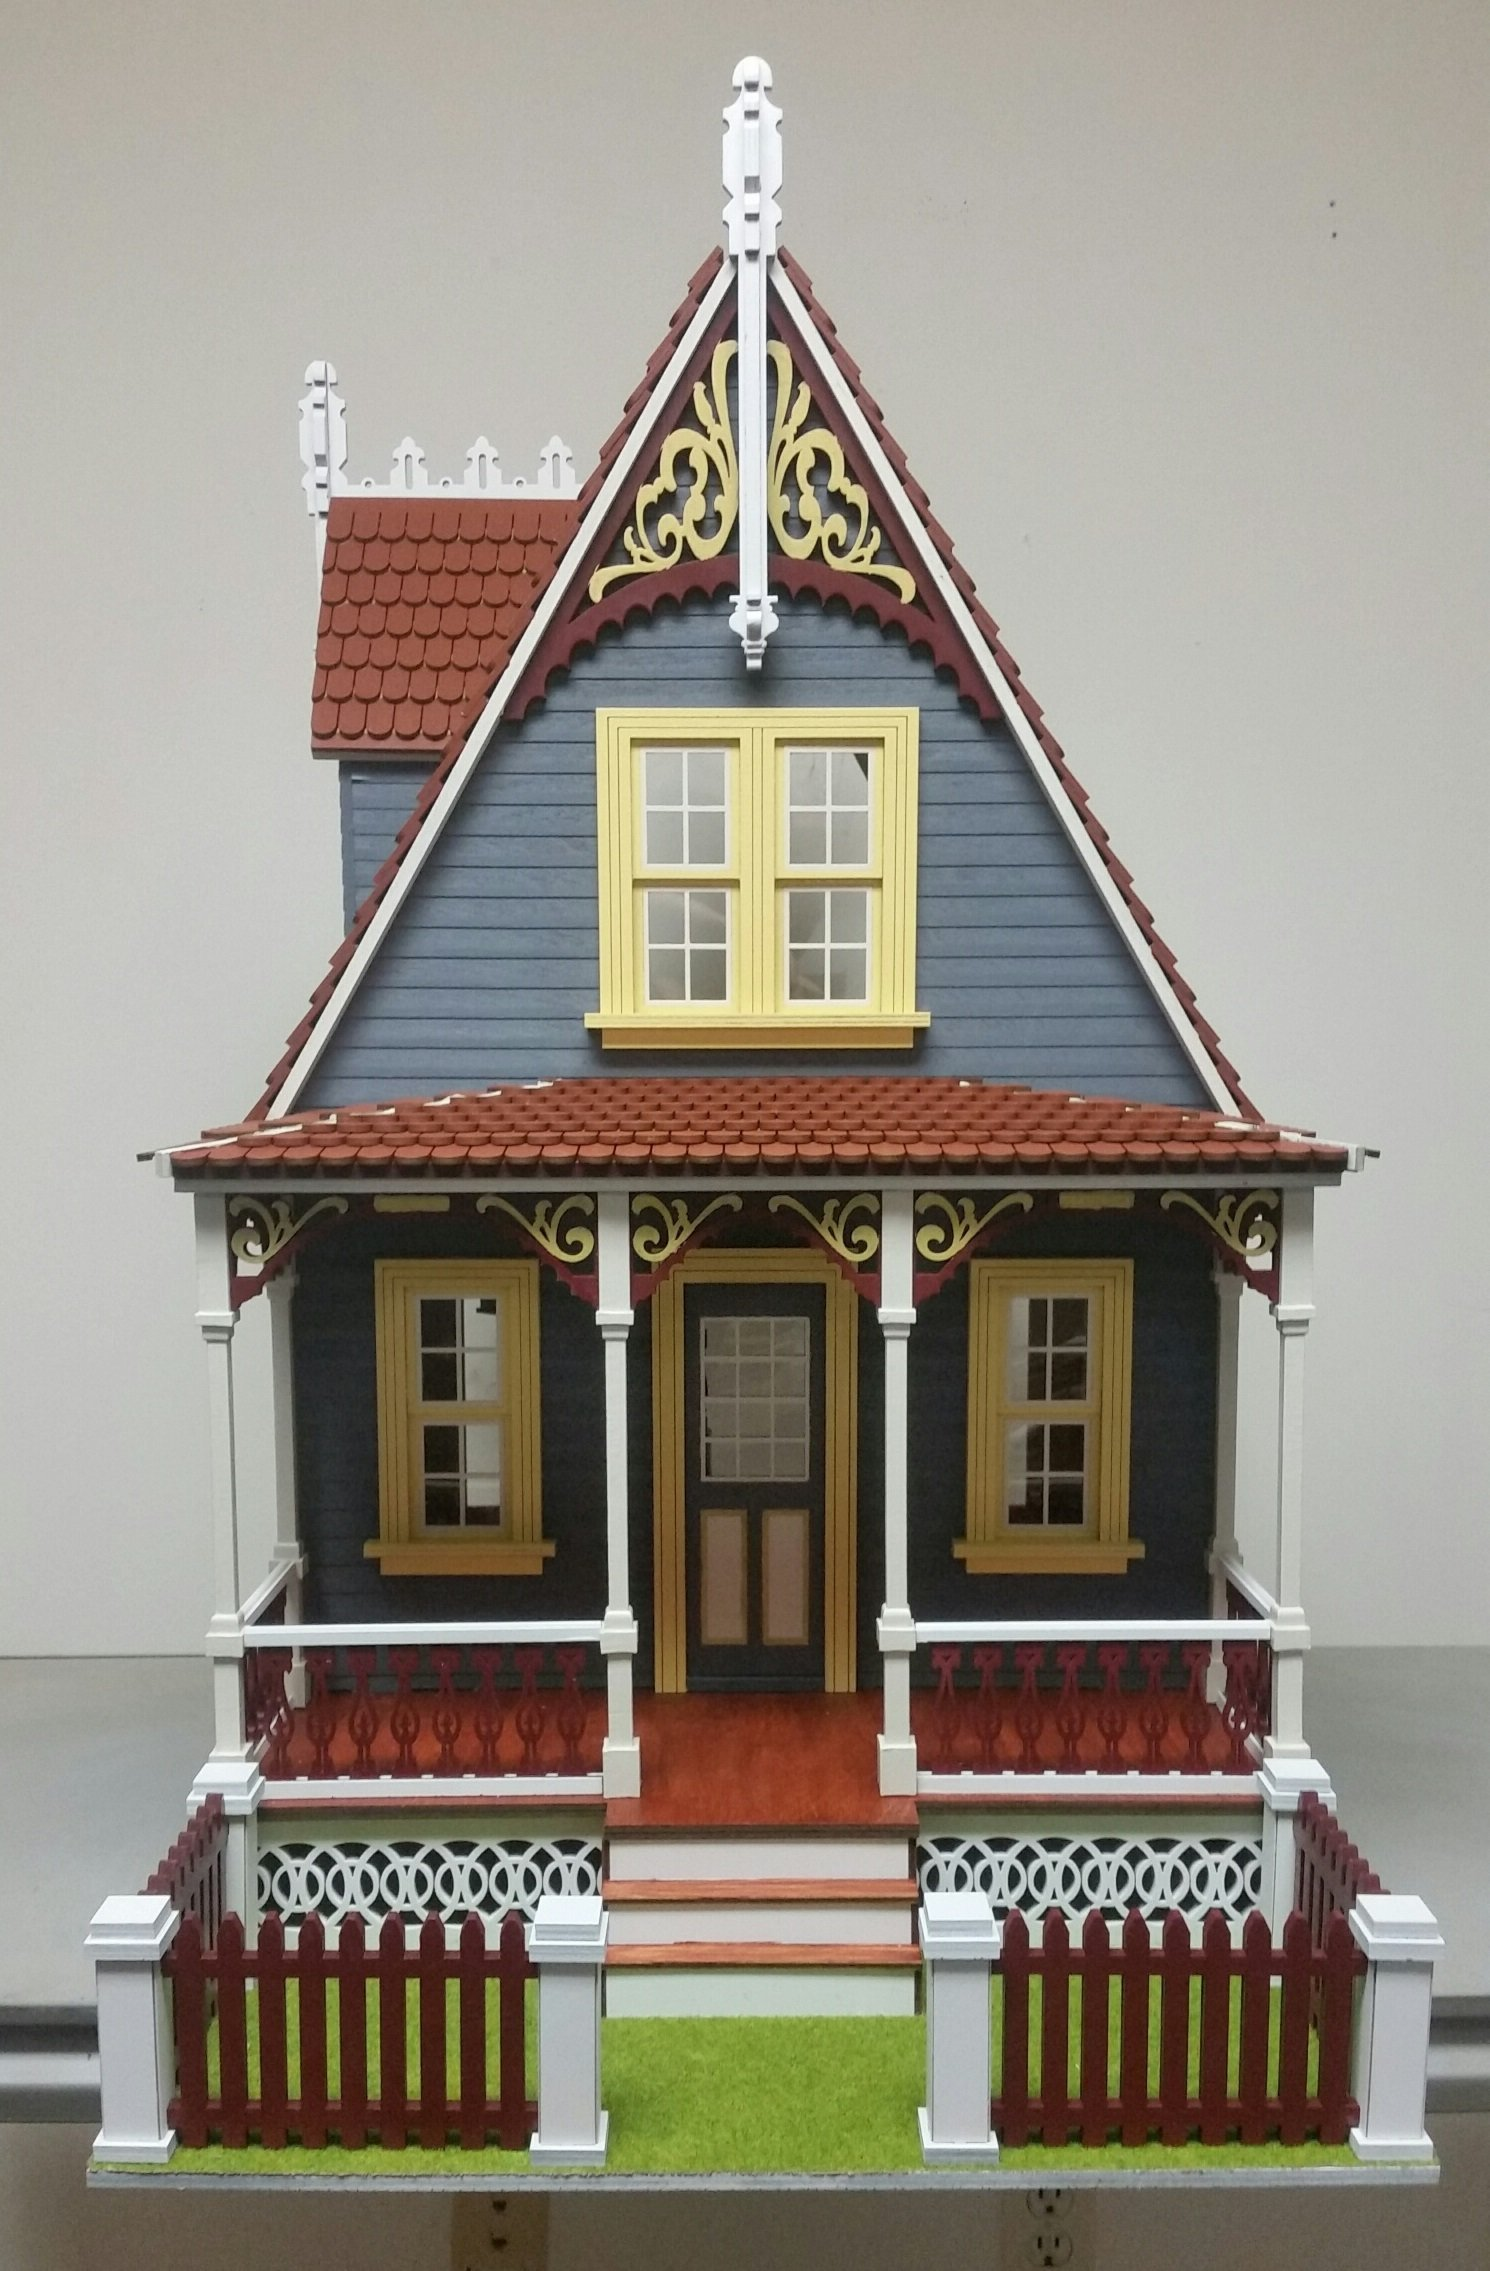 Melody Jane Dollhouse Little Annabelle Cottage 1:12 Lazer Cut Flat Pack Kit